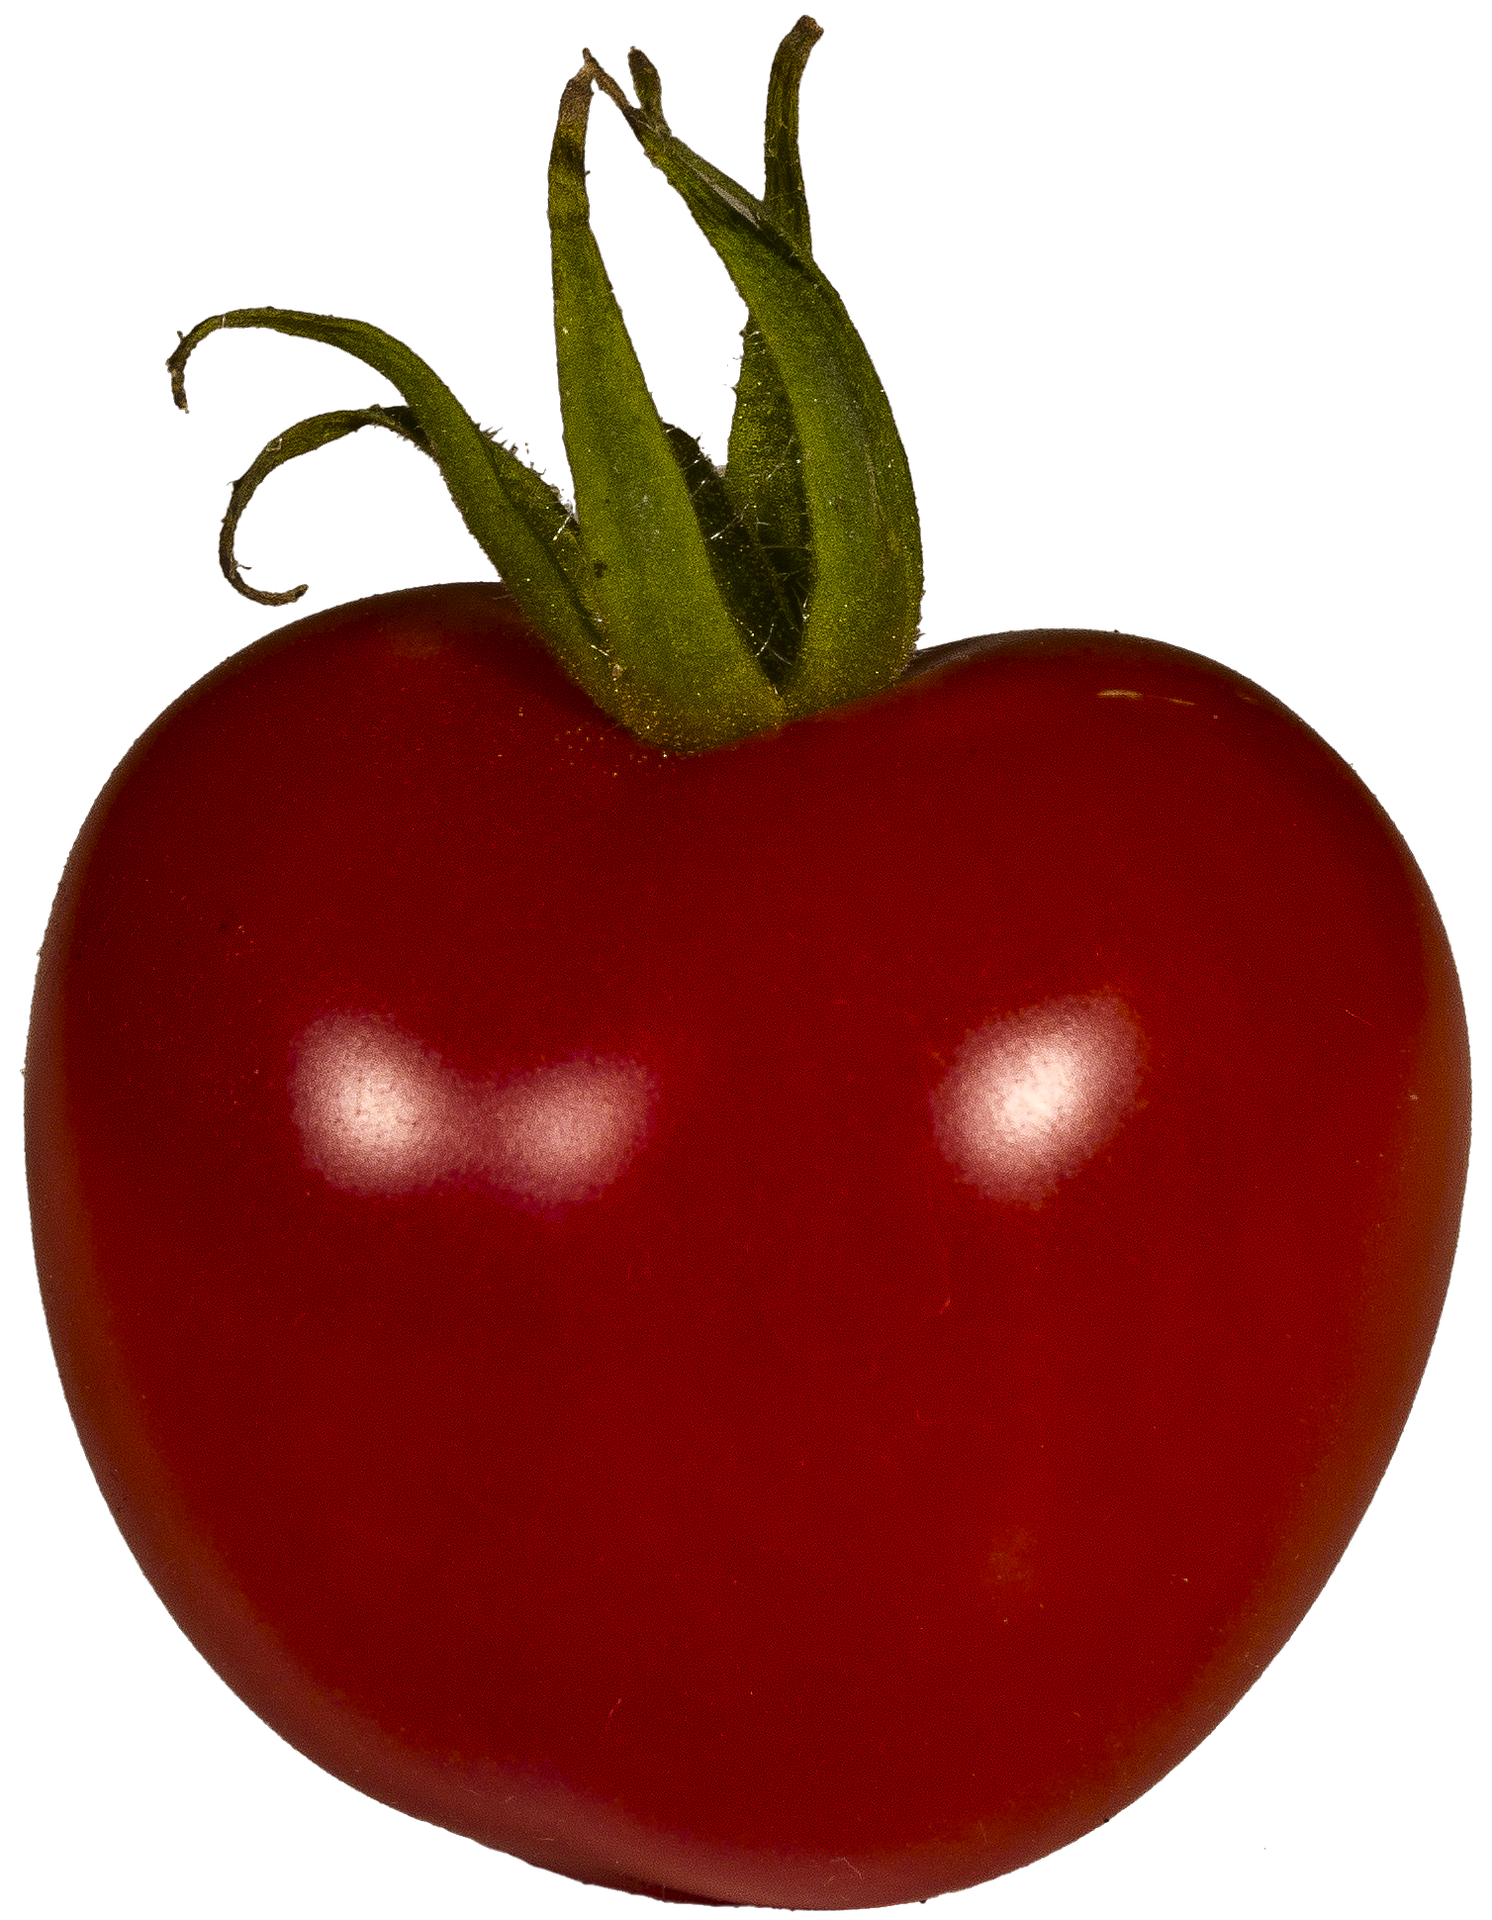 tomato-2485050_1920.png